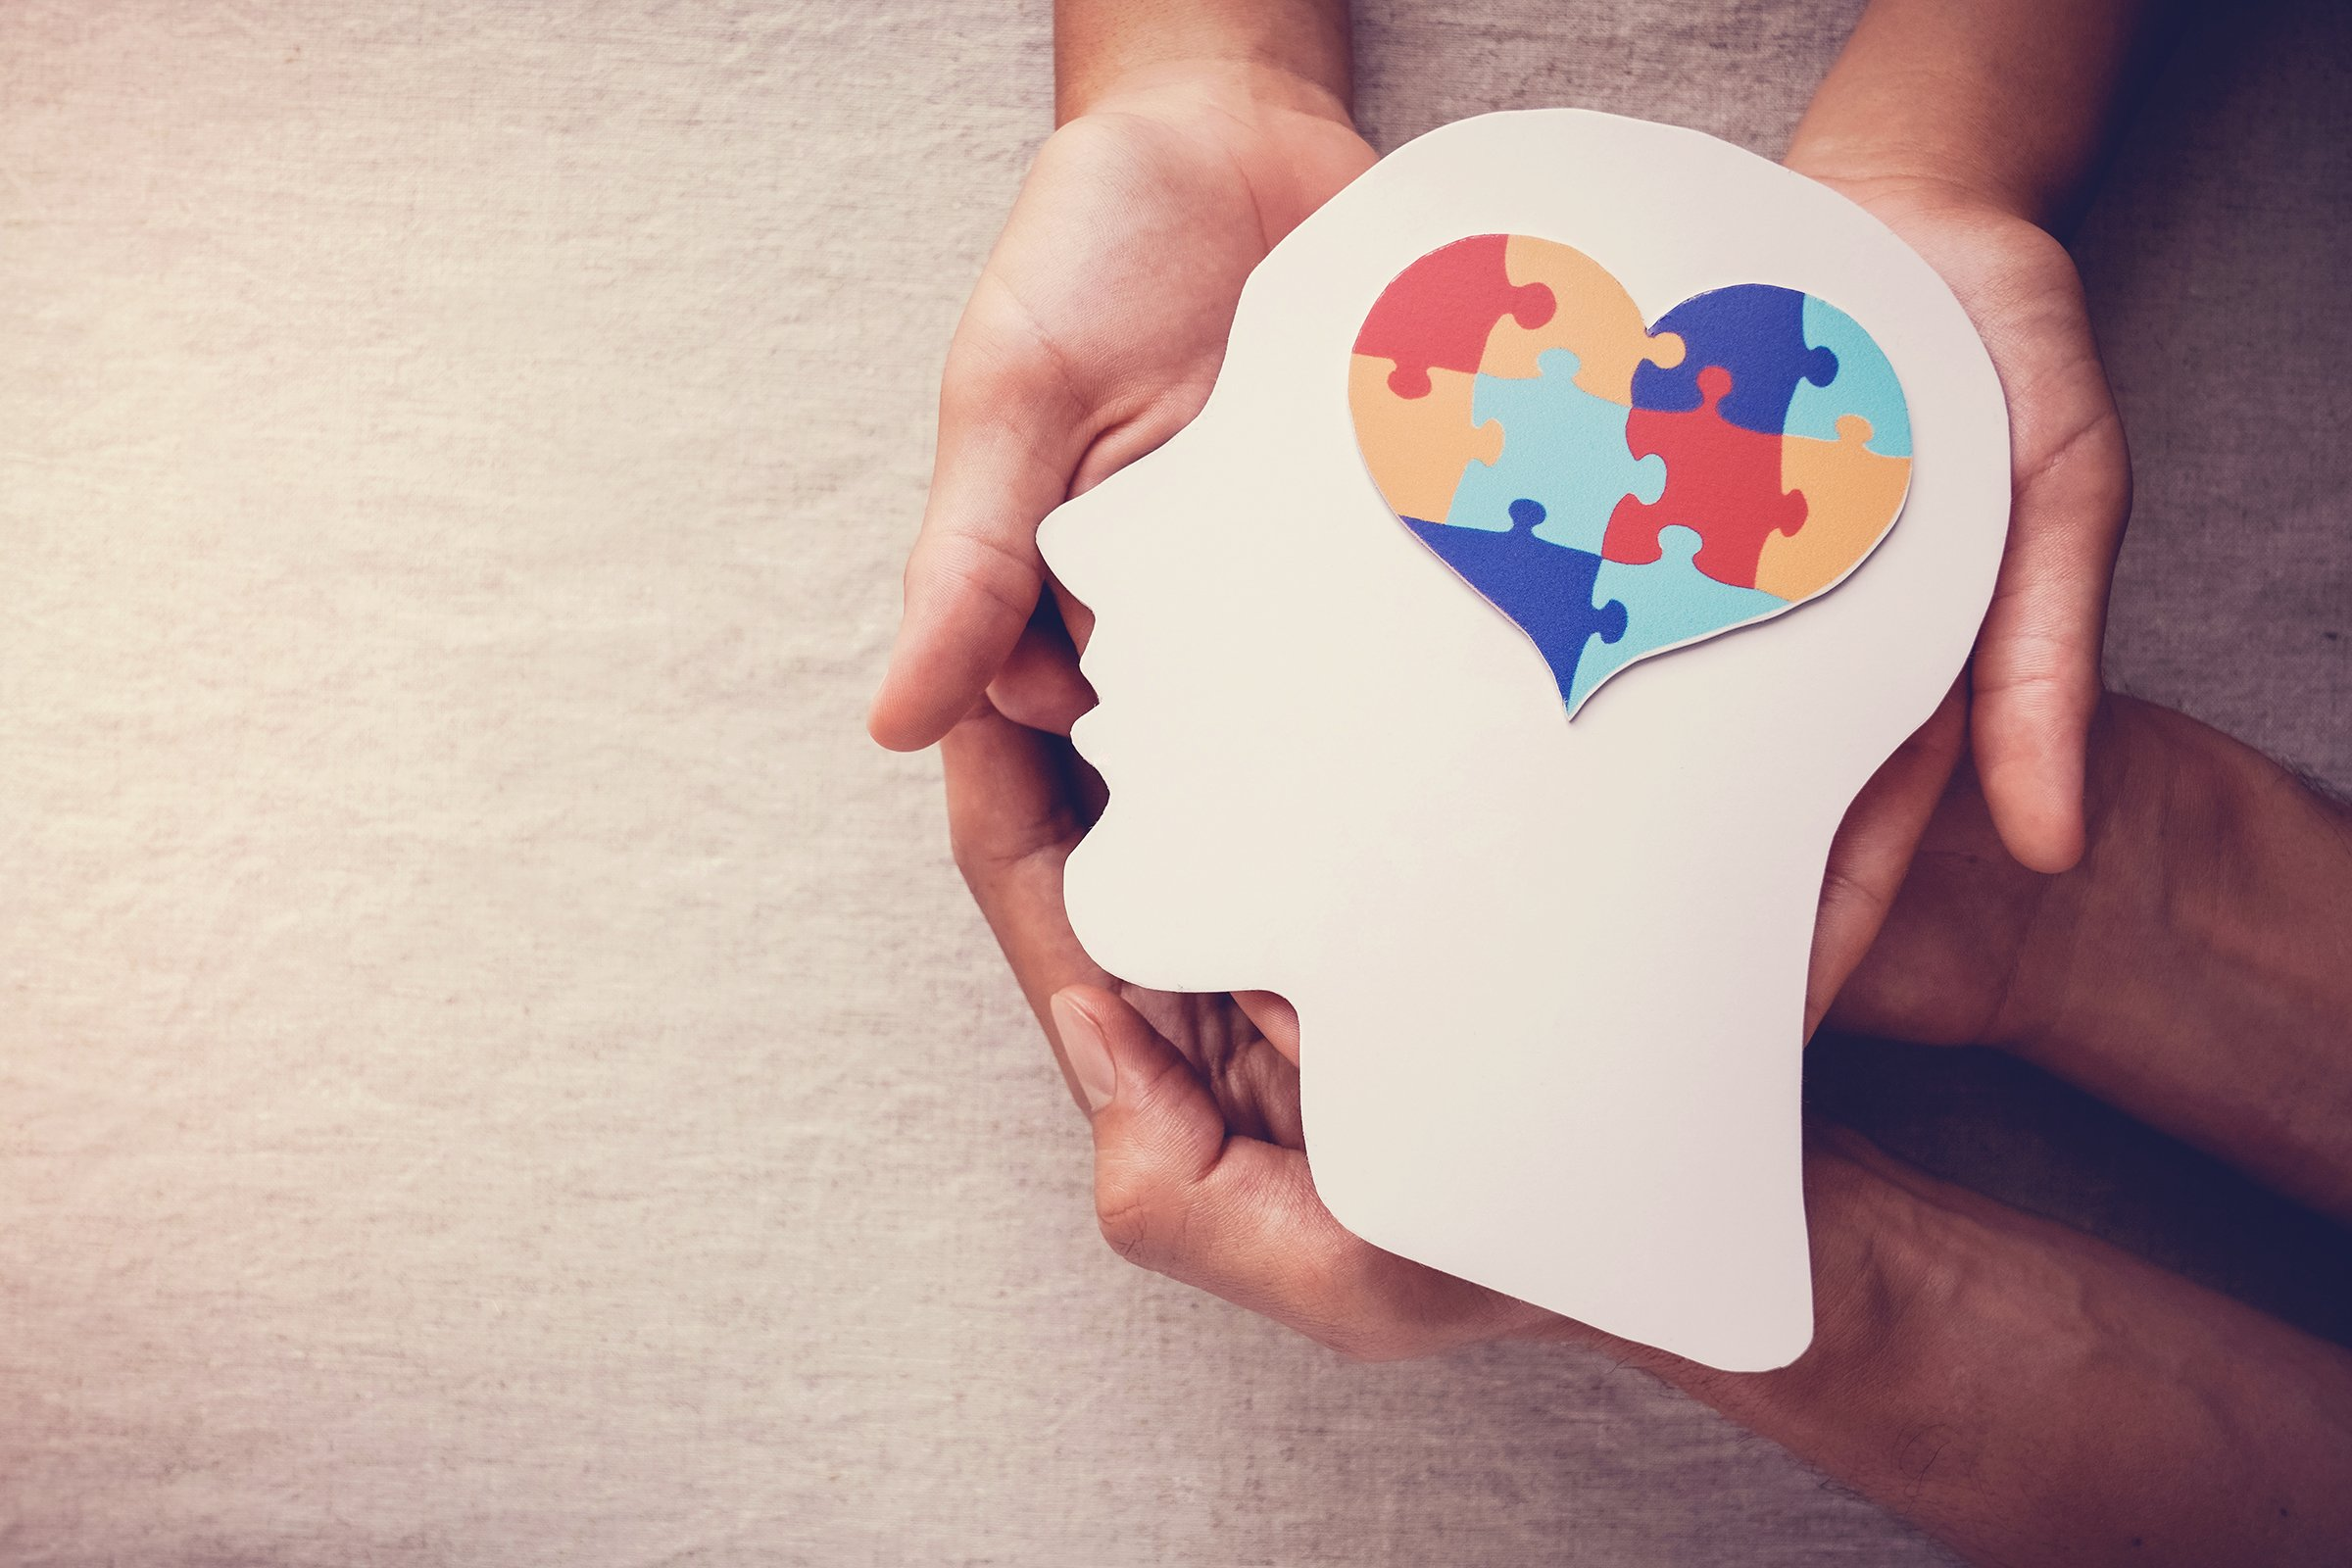 Mental health and customer service